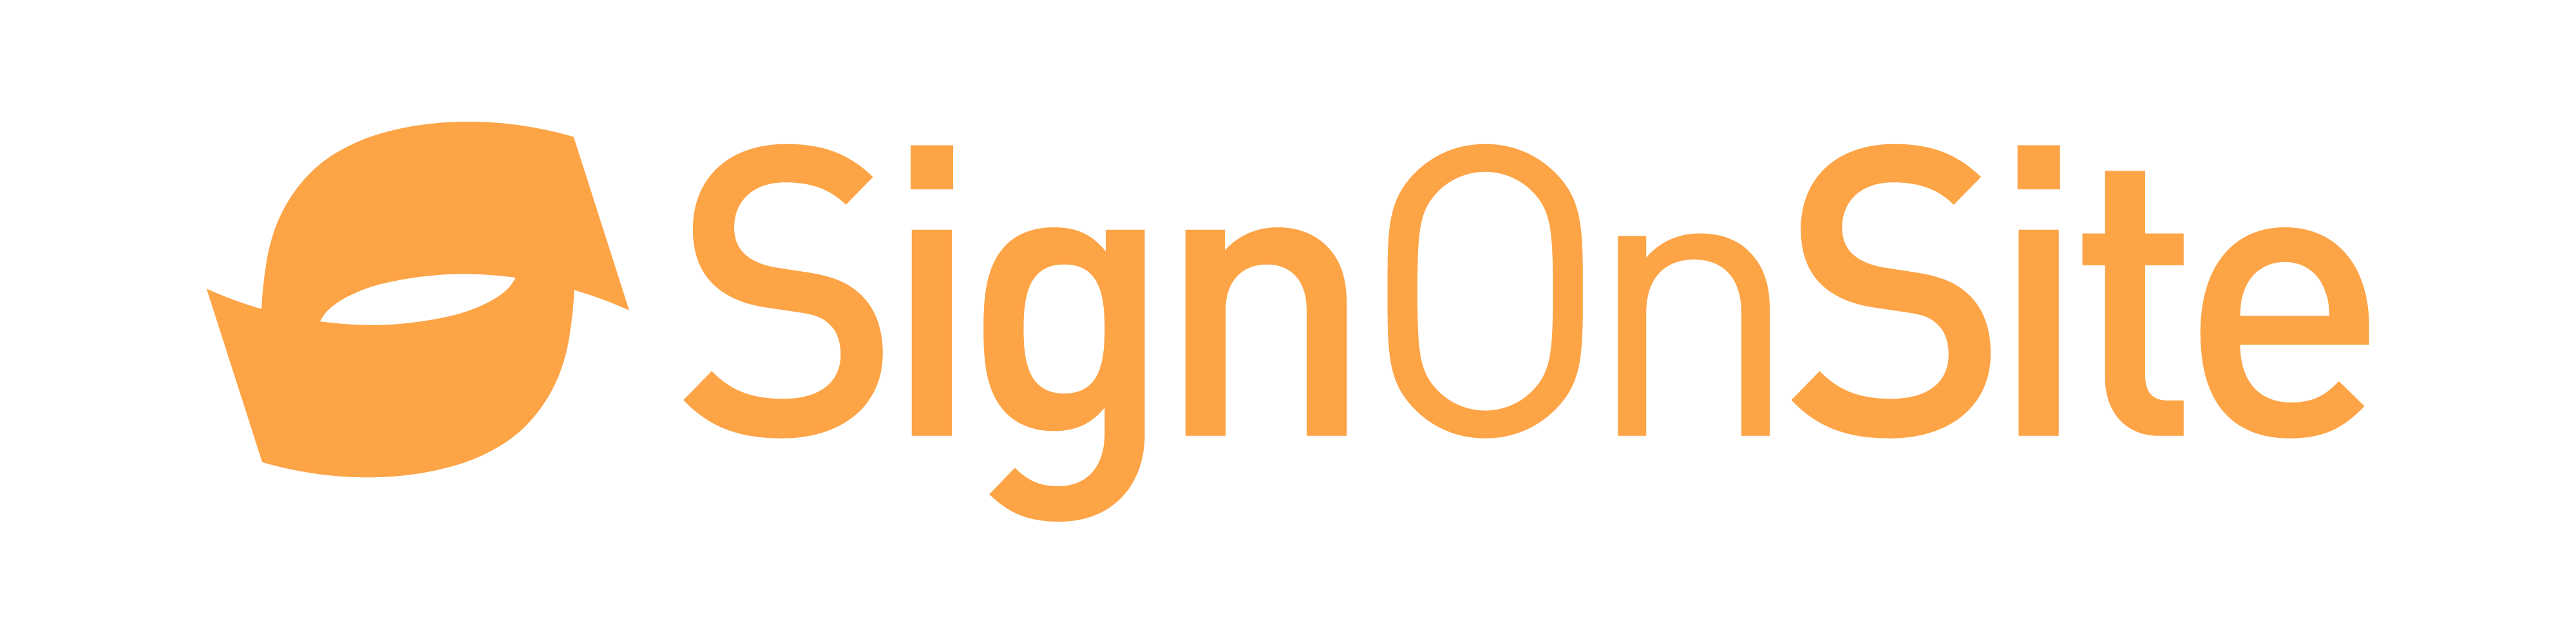 SignOnSite logo.png